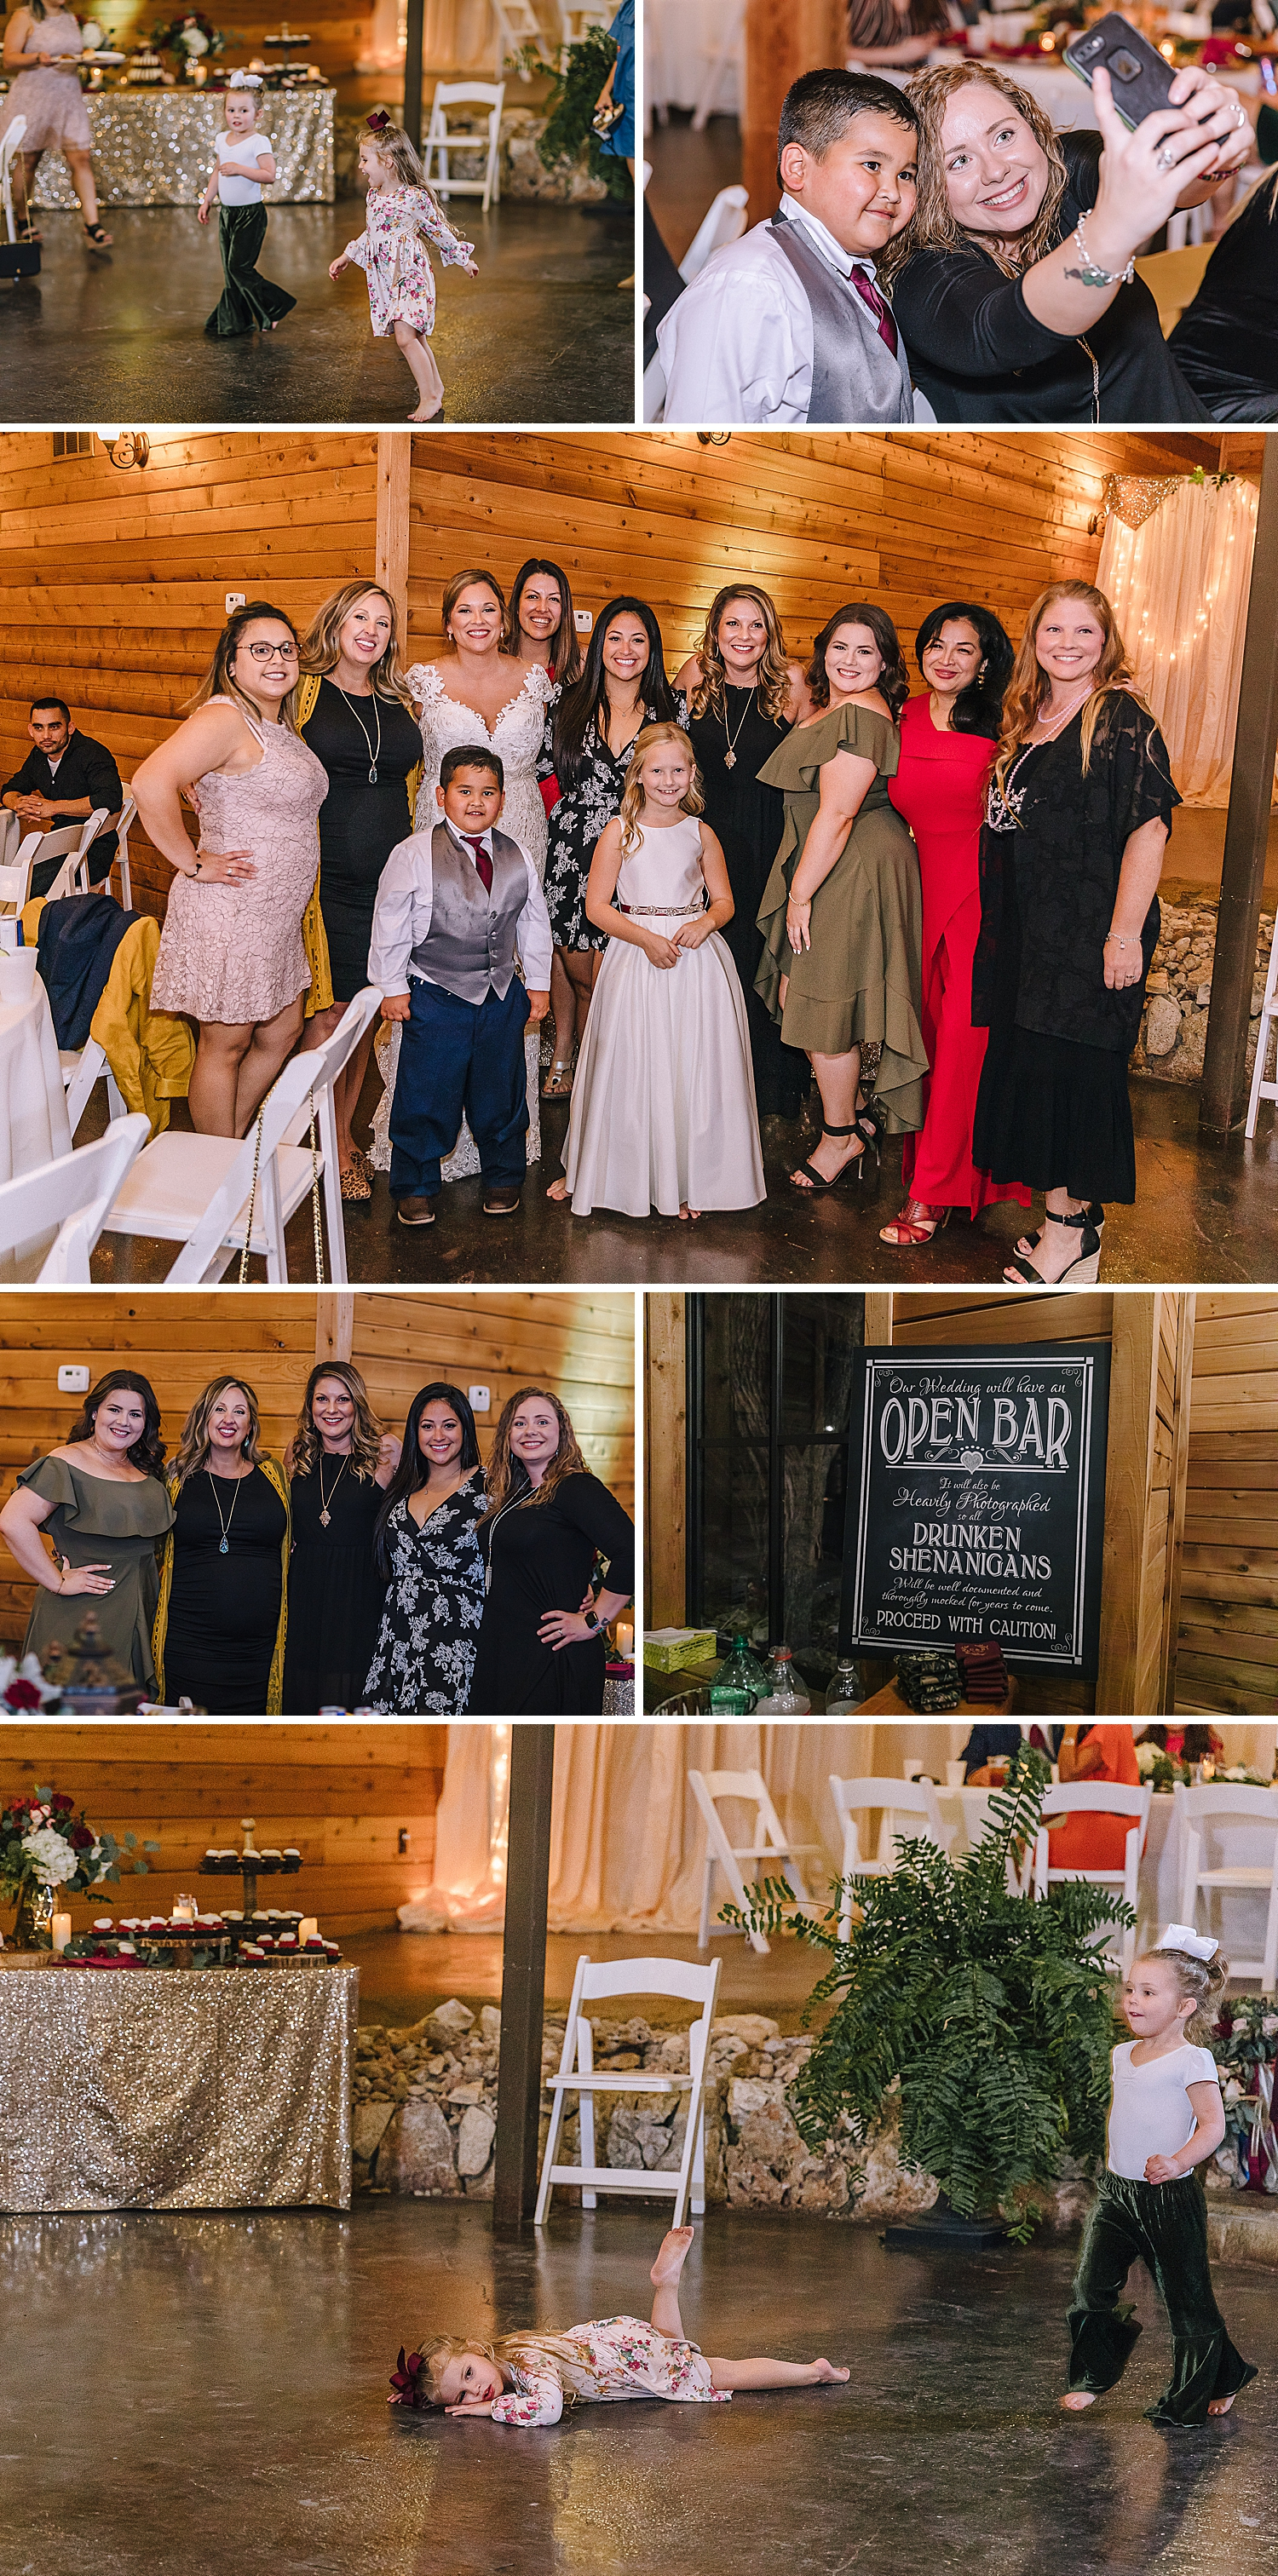 Geronimo-Oaks-Wedding-Venue-Seguin-Texas-Elegant-Navy-Burgundy-Wedding-Carly-Barton-Photography_0067.jpg